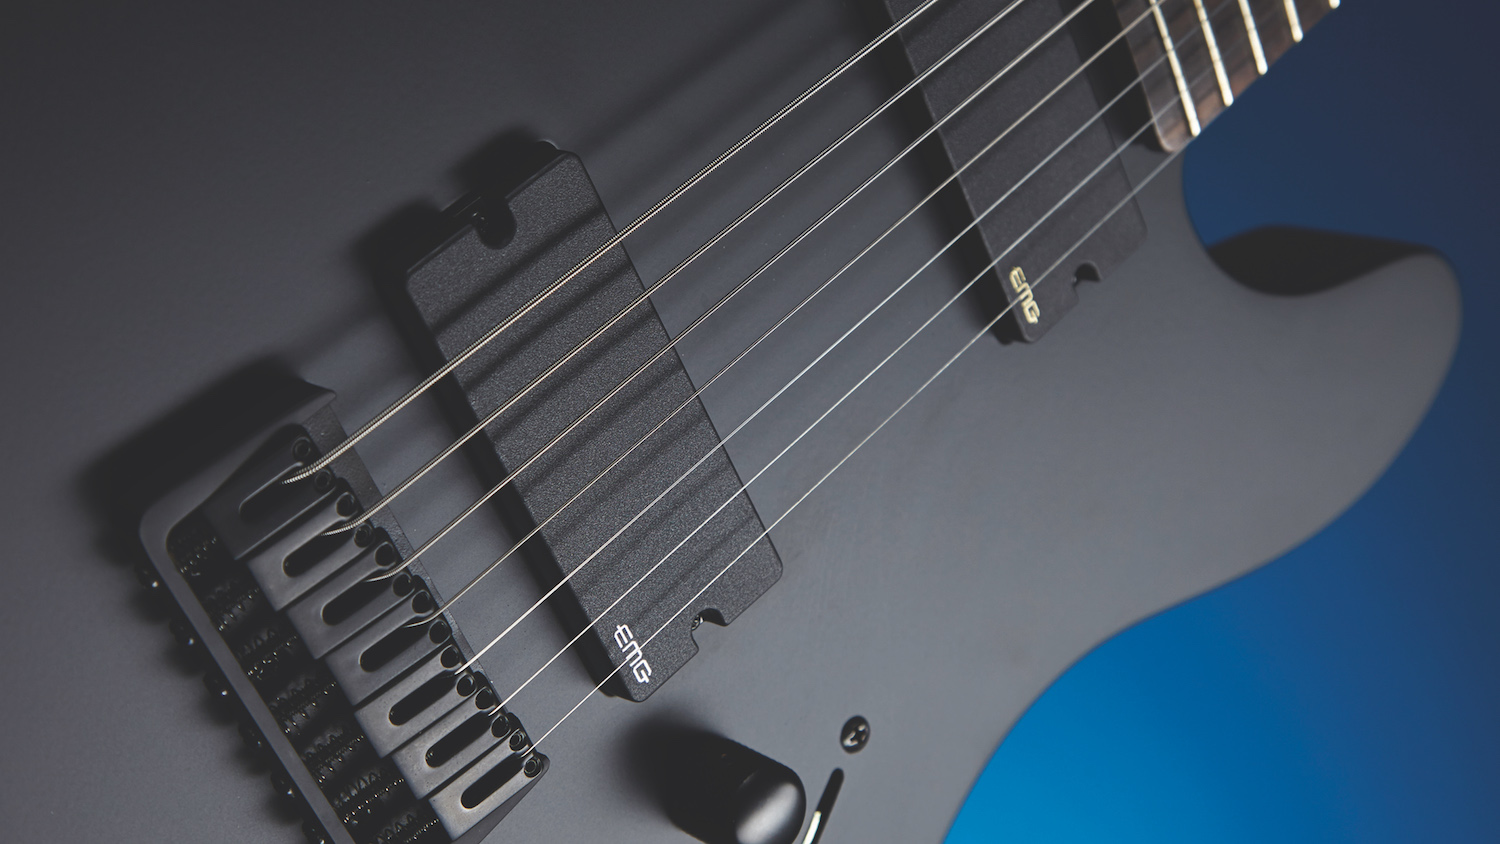 Best 7 String Guitars 2021 The Top Pro And Cheap 7 String Guitars Musicradar